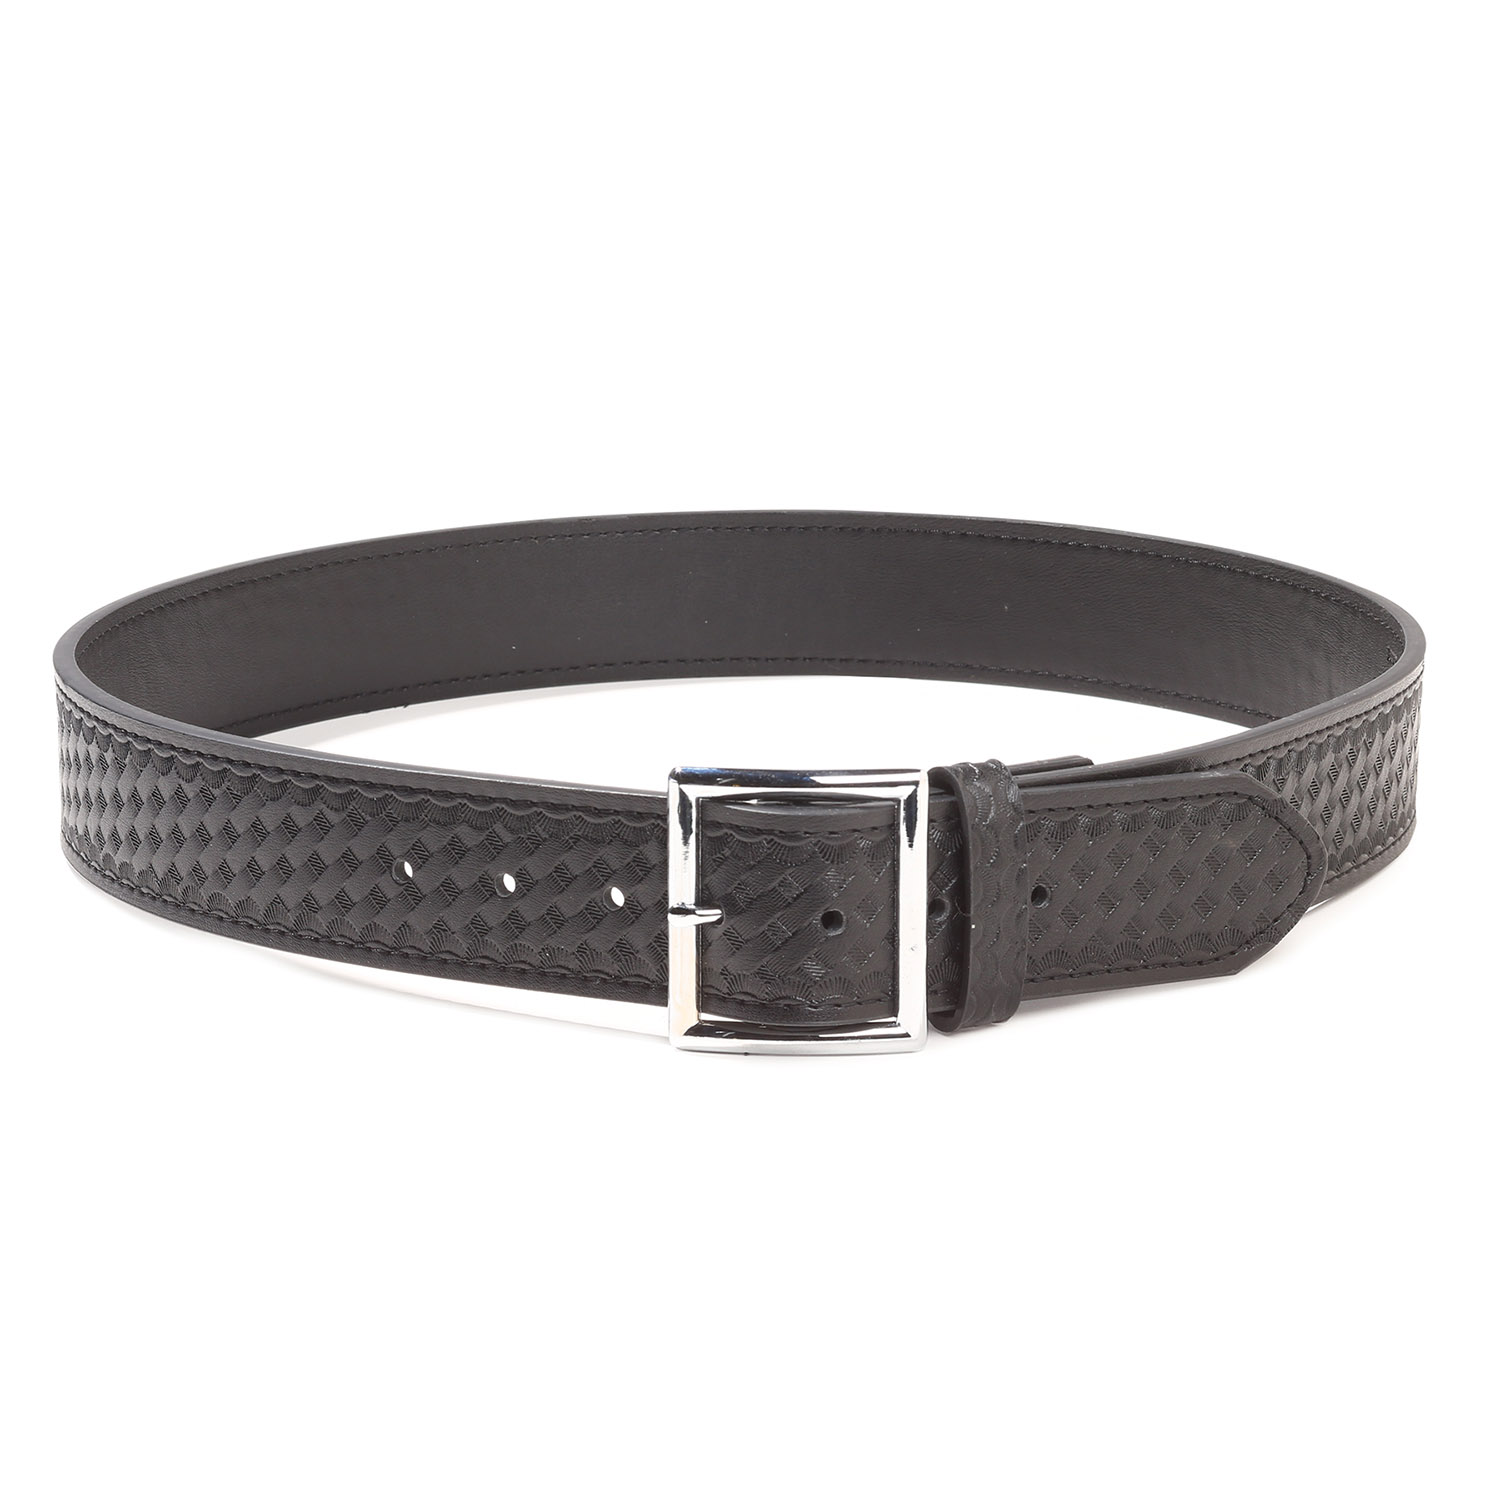 "Hero's Pride AIR-TEK 1 3/4"" Garrison Belt"